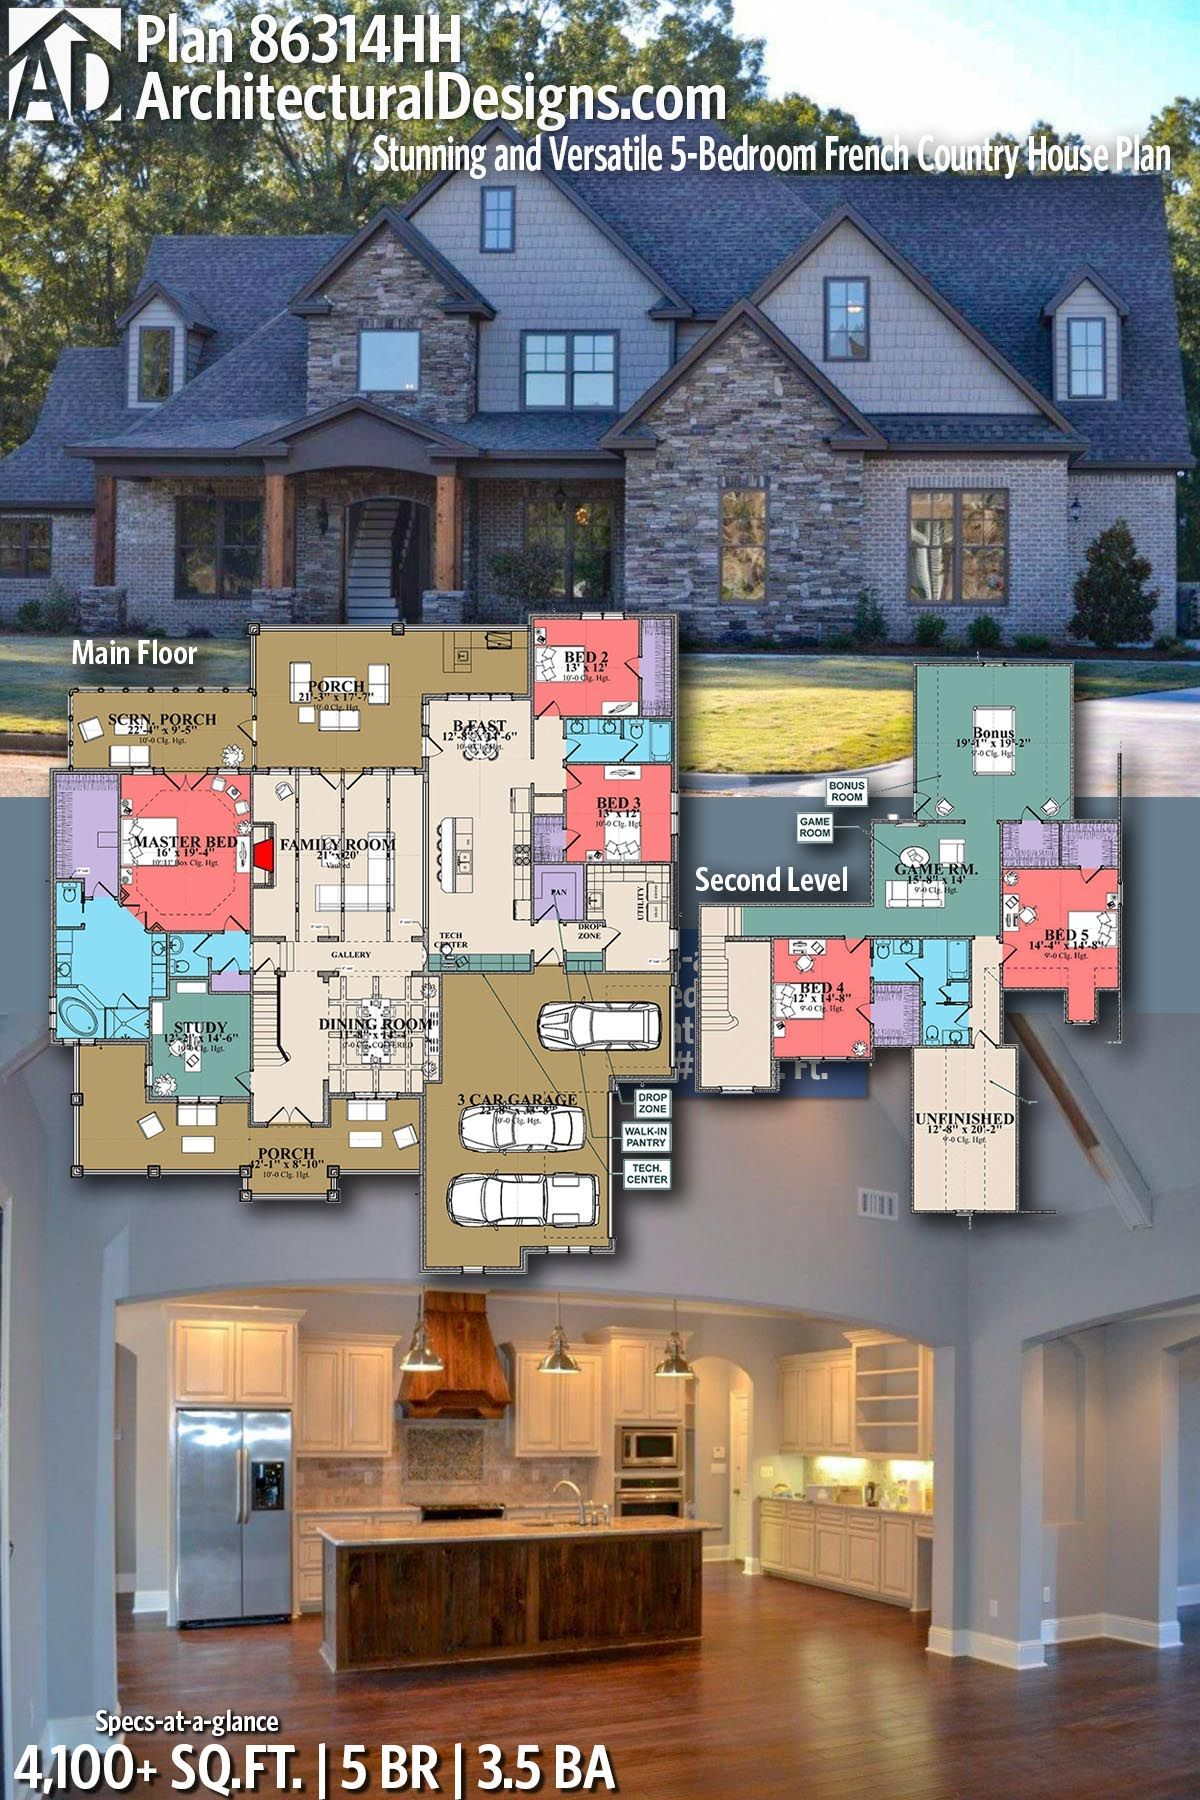 Architectural Designs Craftsman Home Plan 86314HH gives